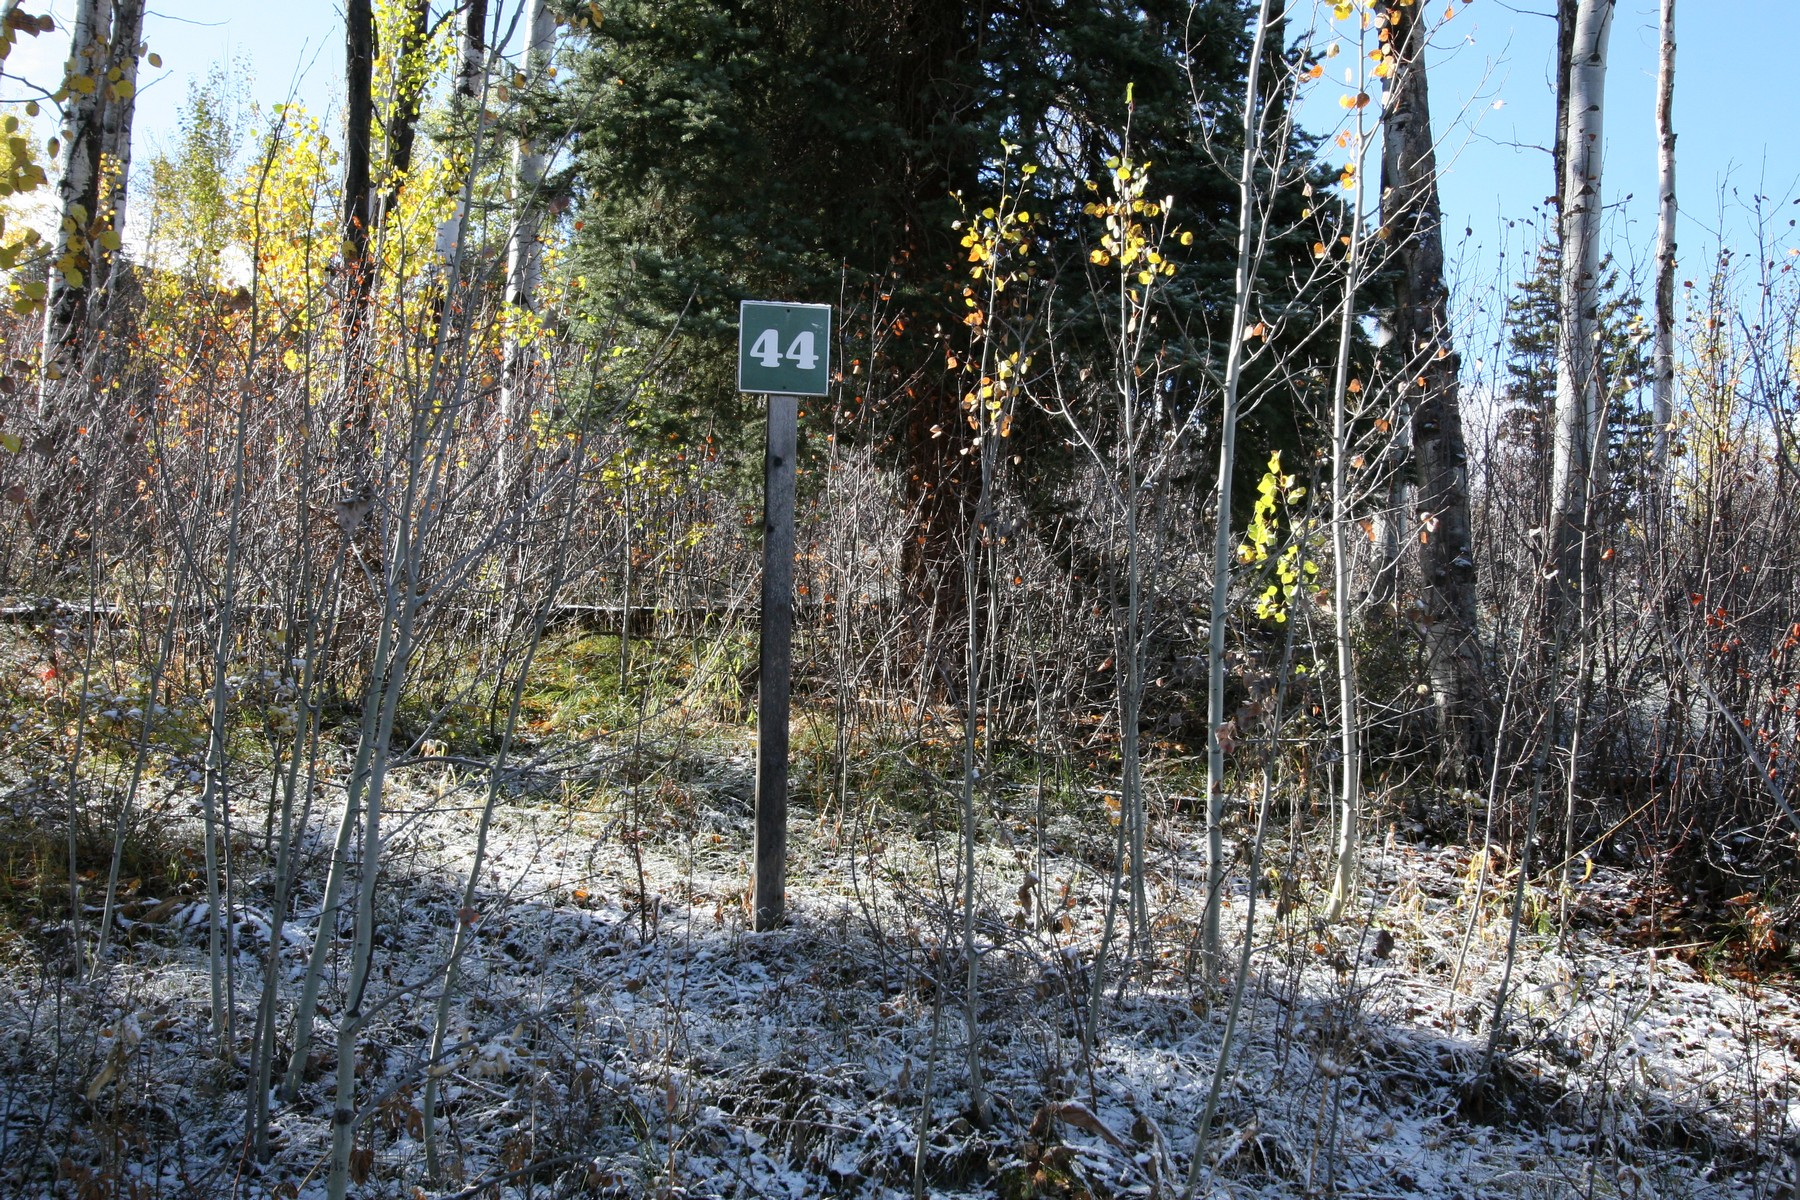 Land for Sale at Pines Lot 44 461 Pine Crest Drive Snowmass Village, Colorado, 81615 United States